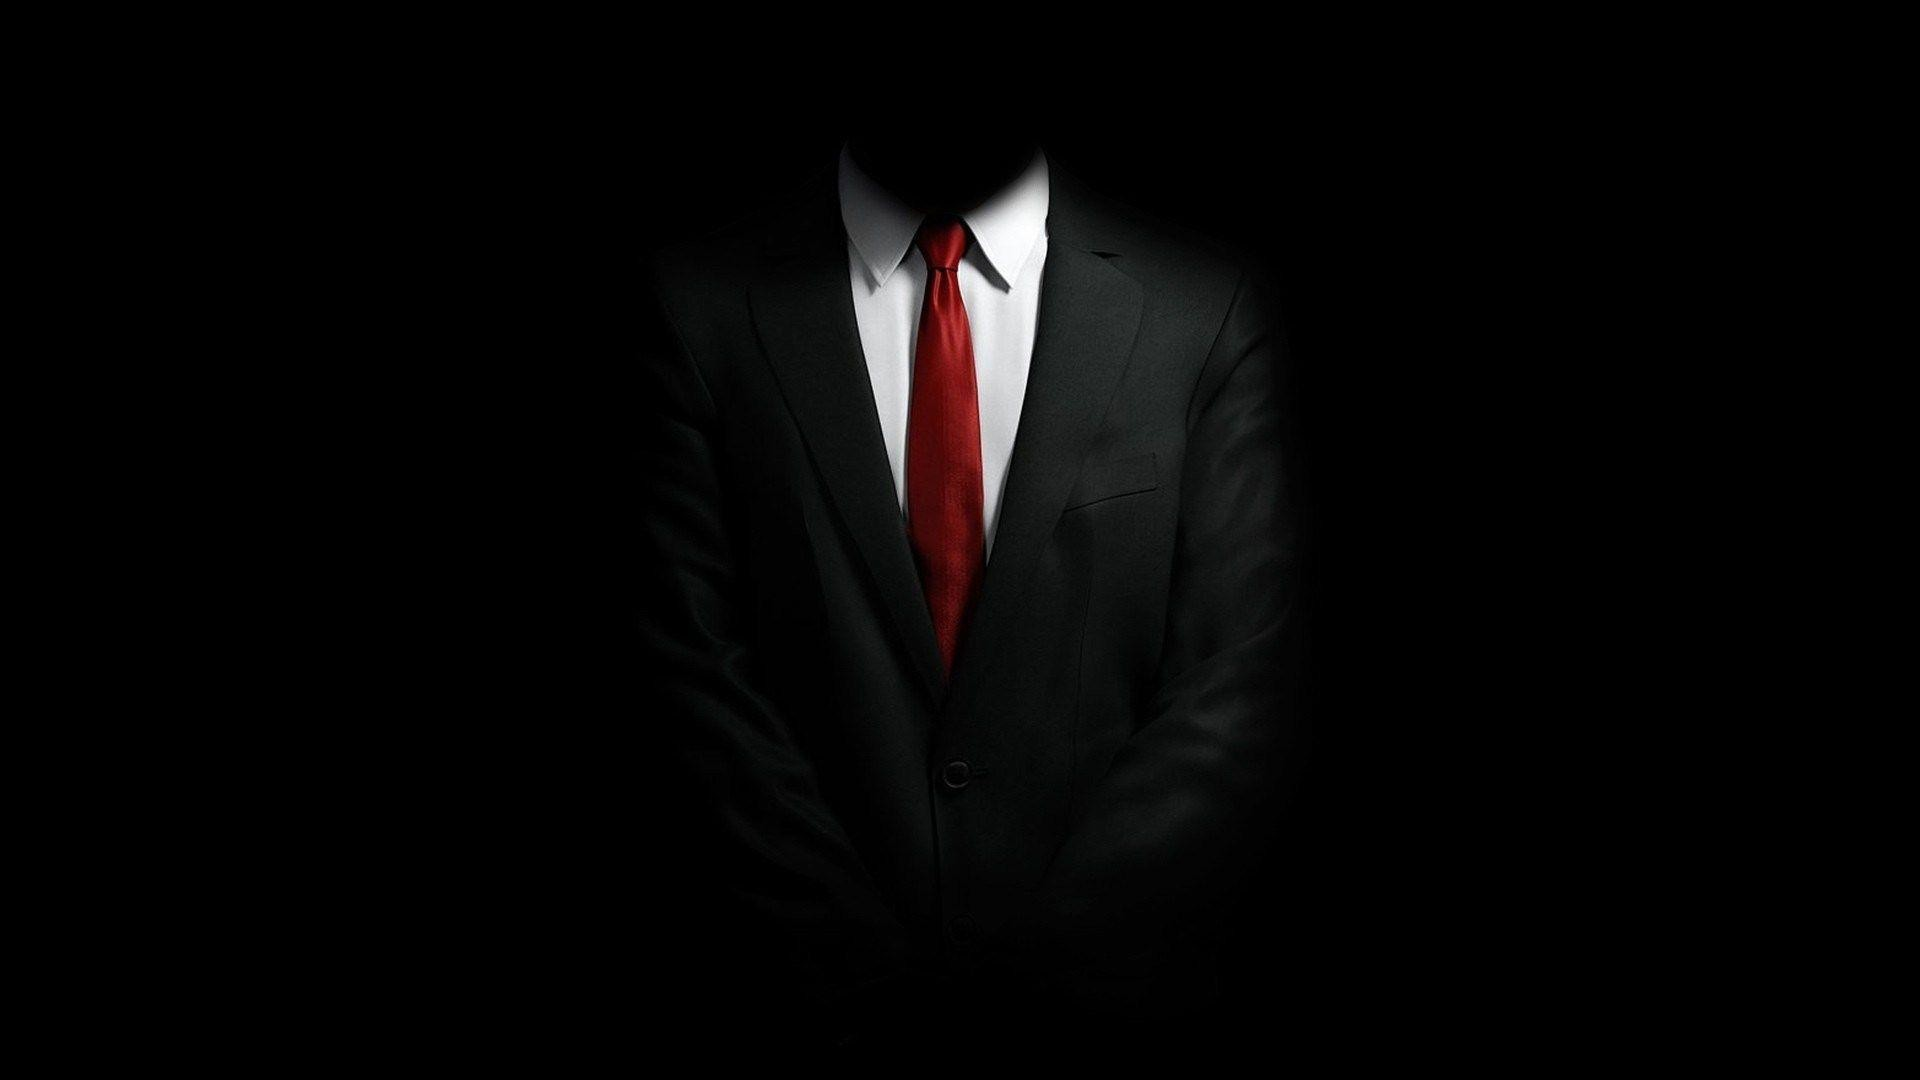 1920x1080 Black Suit White Shirt Red Tie Style HD Wallpaper - ZoomWalls